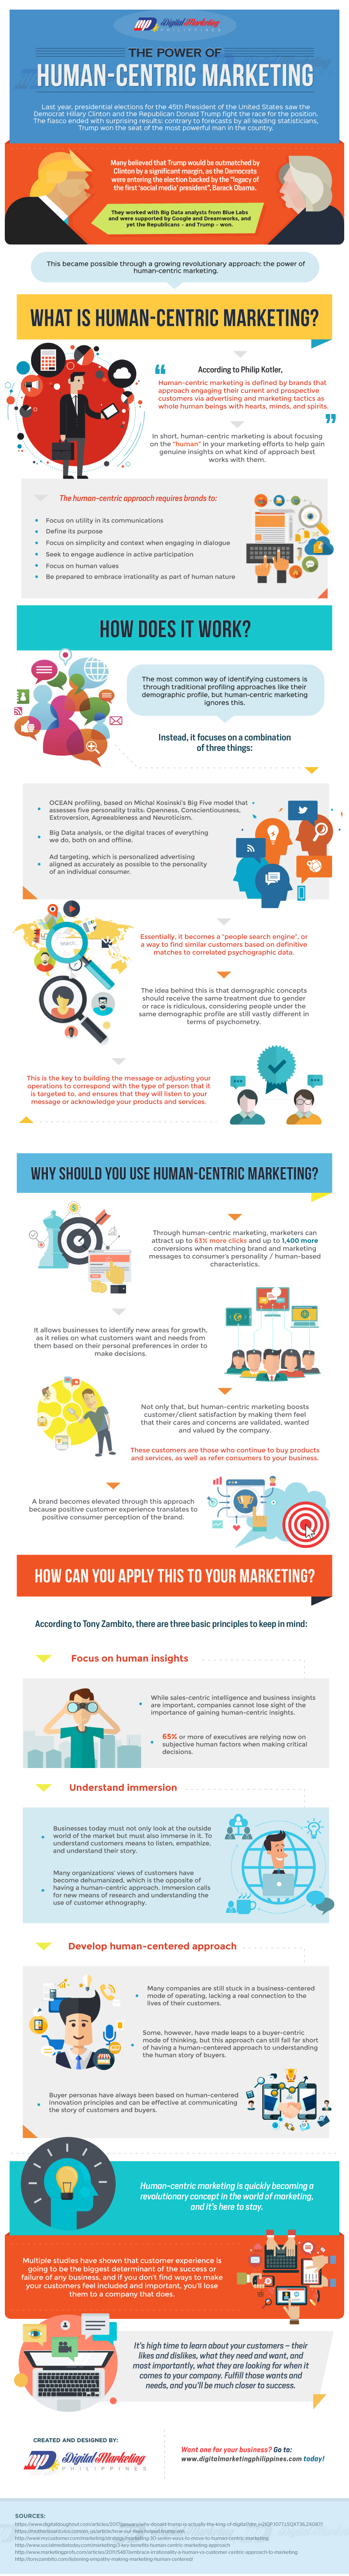 The_Power_of_Human-Centric_Marketing_HD